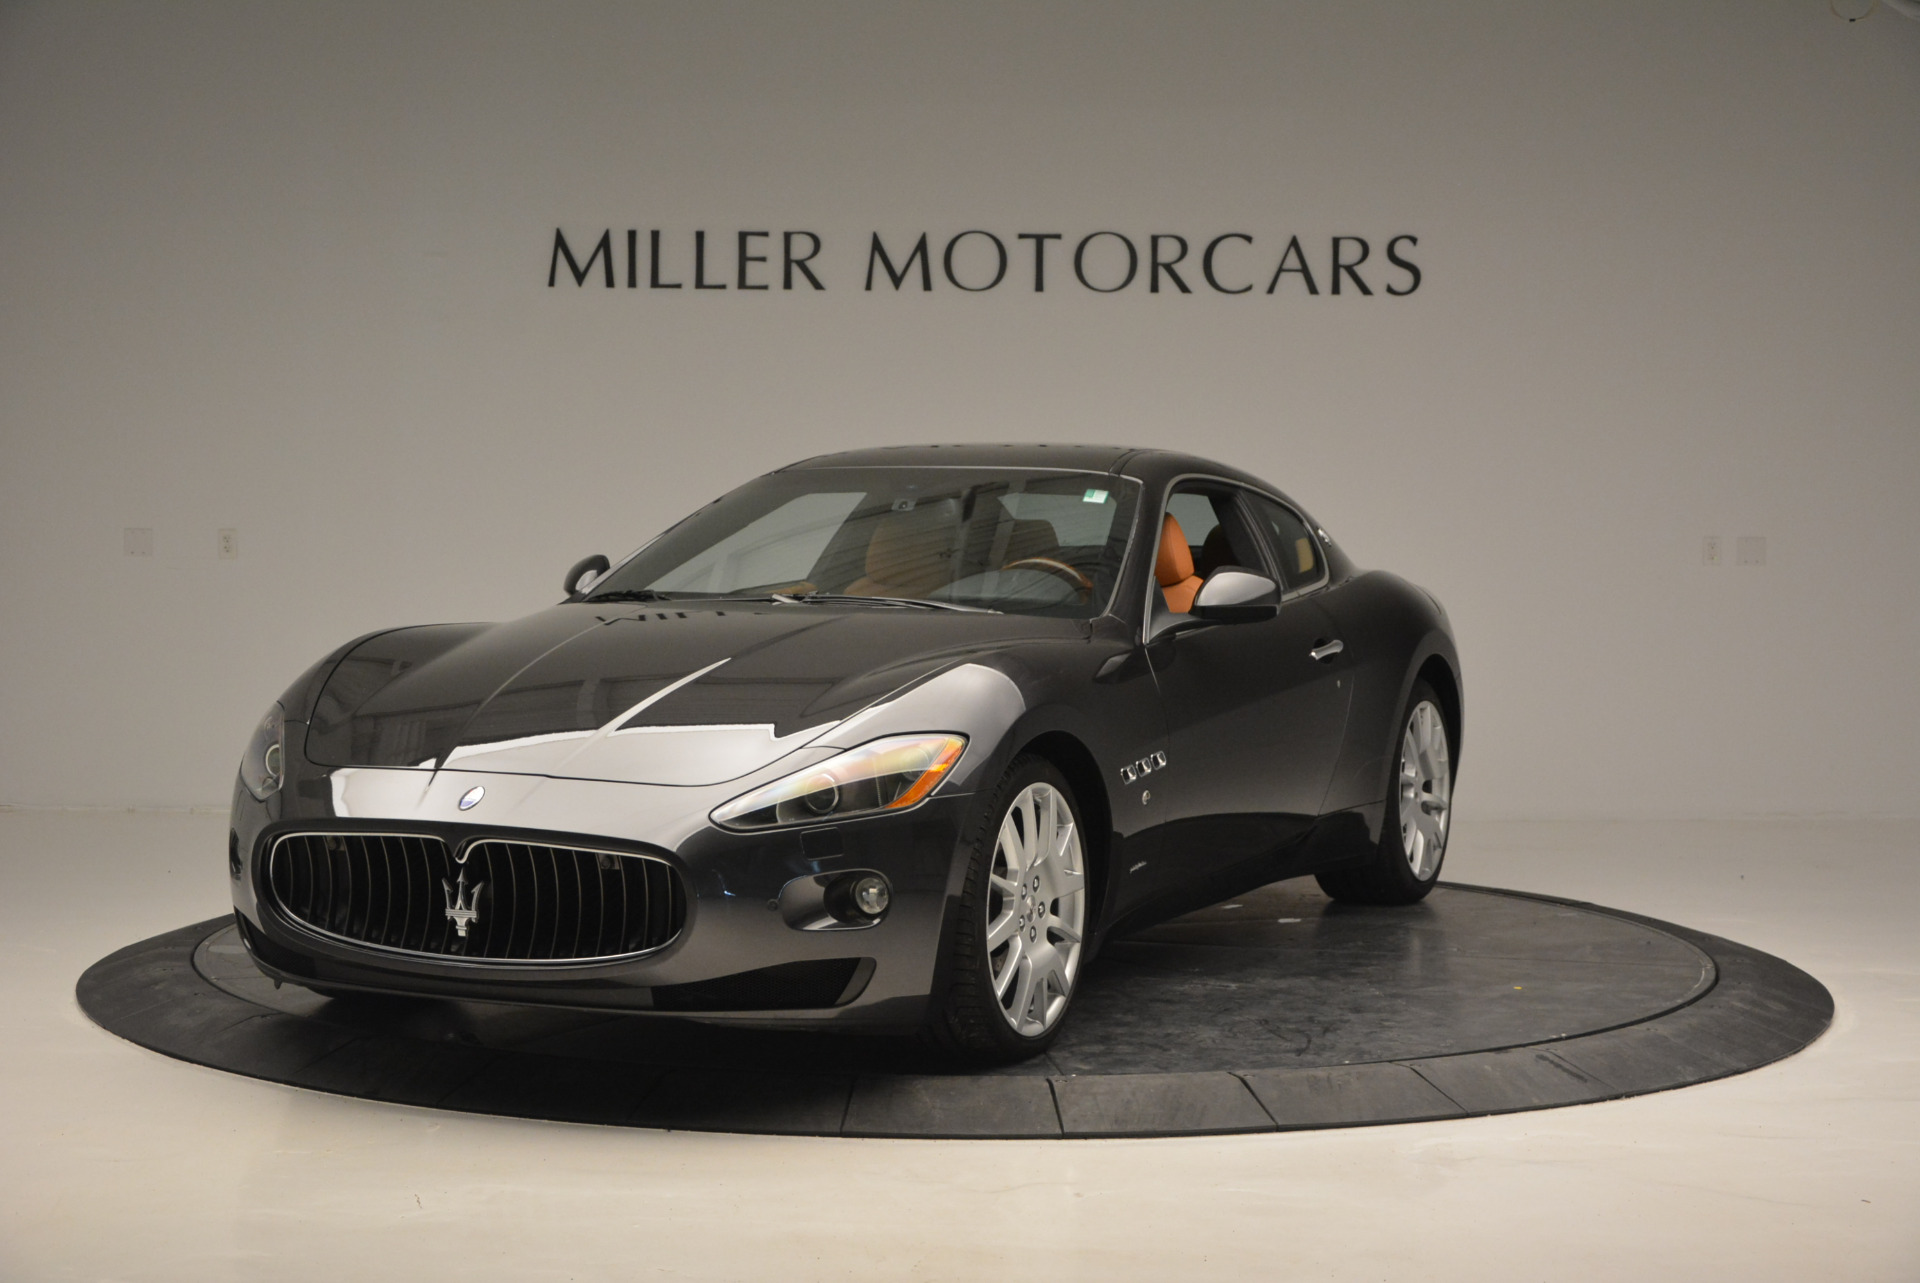 Used 2011 Maserati GranTurismo for sale Sold at Bugatti of Greenwich in Greenwich CT 06830 1